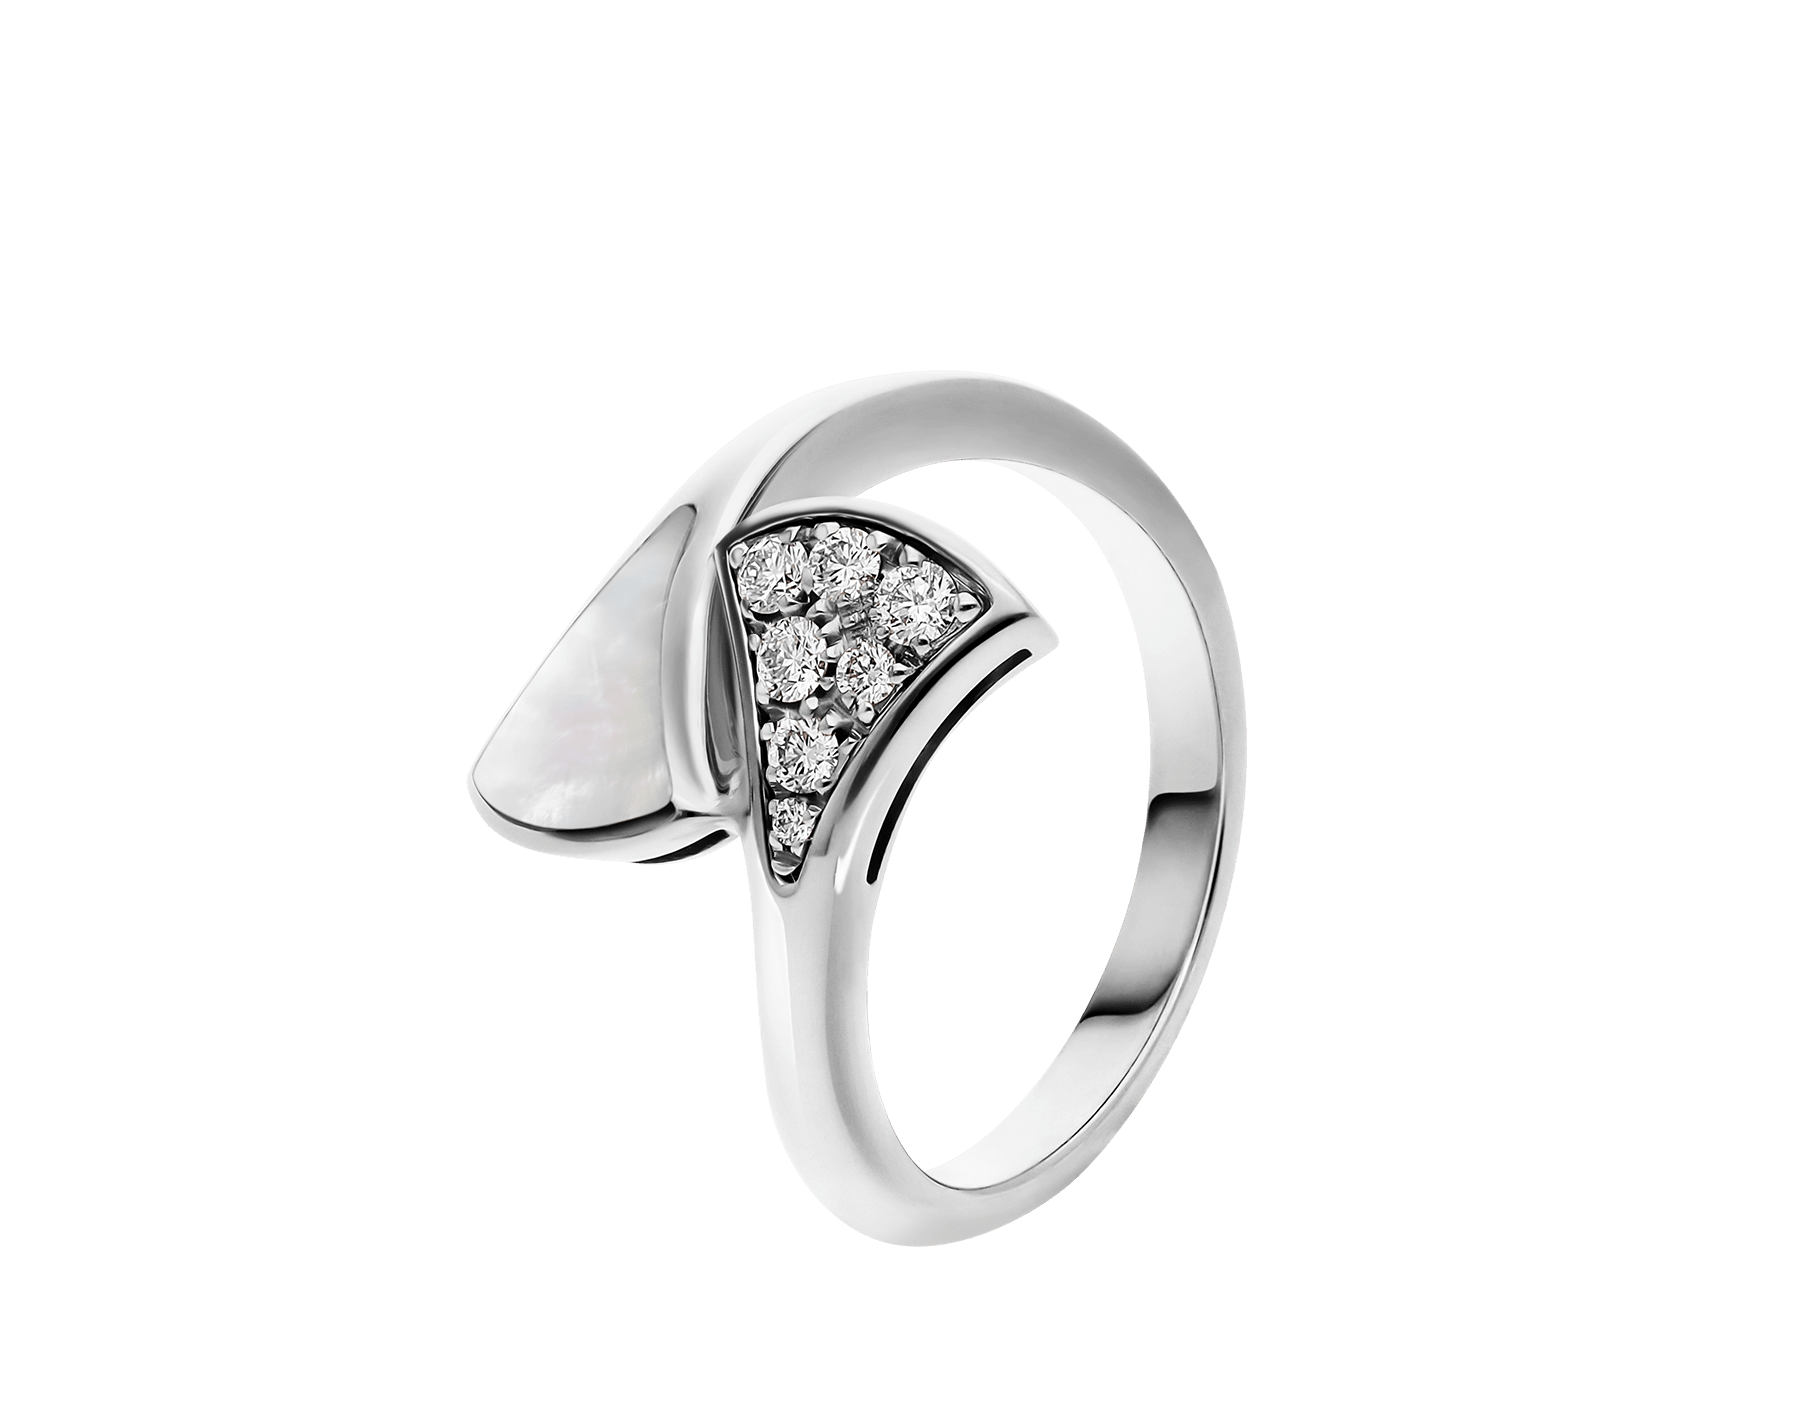 DIVAS' DREAM small contraire ring in 18 kt white gold, set with mother-of-pearl and pavé diamonds (0.10 ct). AN858004 image 1